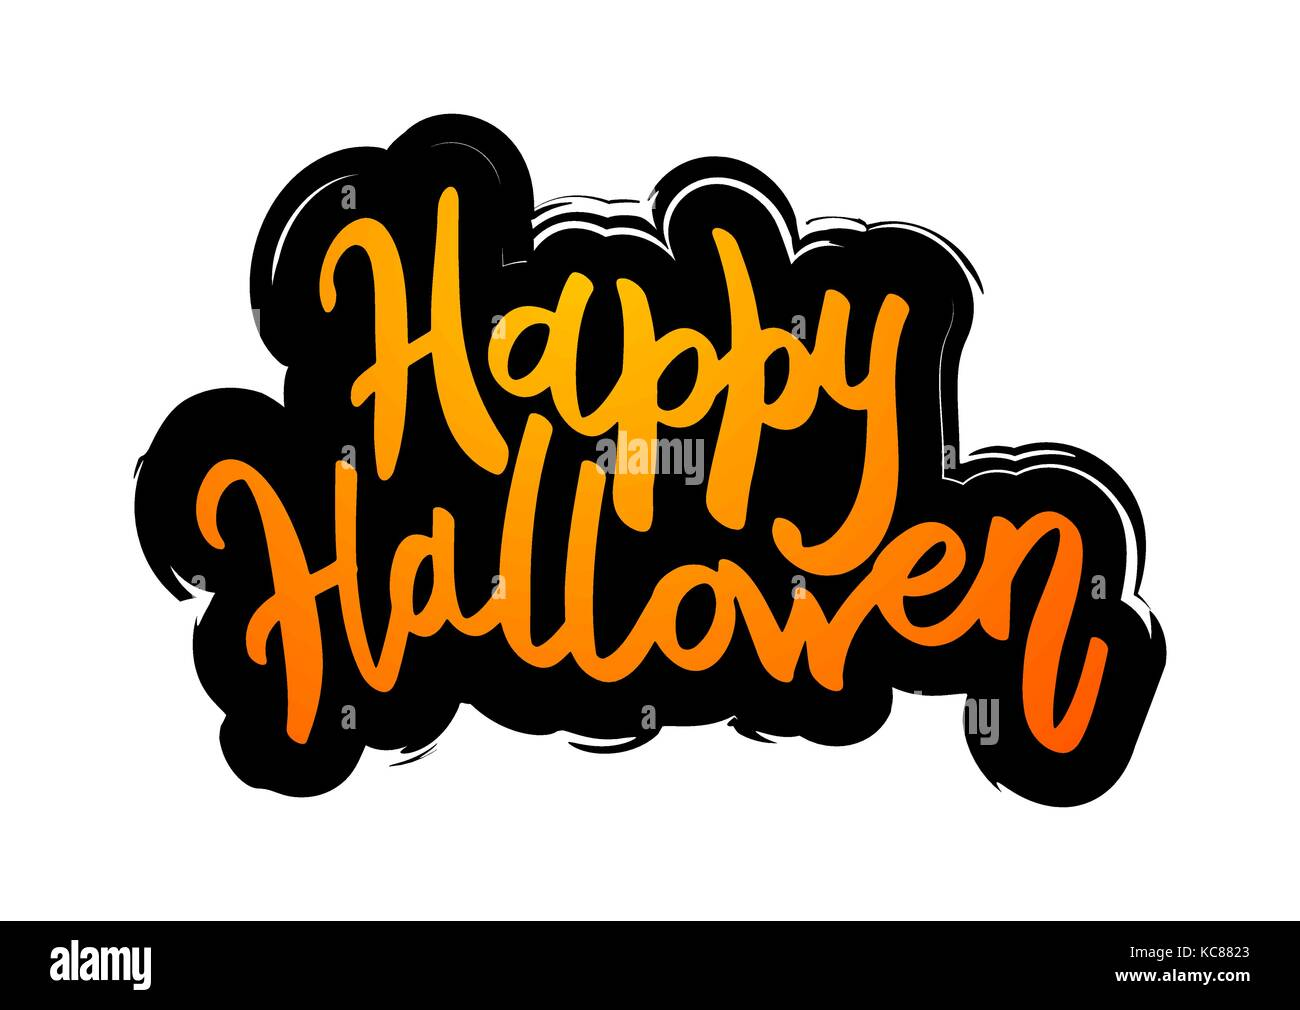 Happy Halloween Message Design Background.   Stock Image